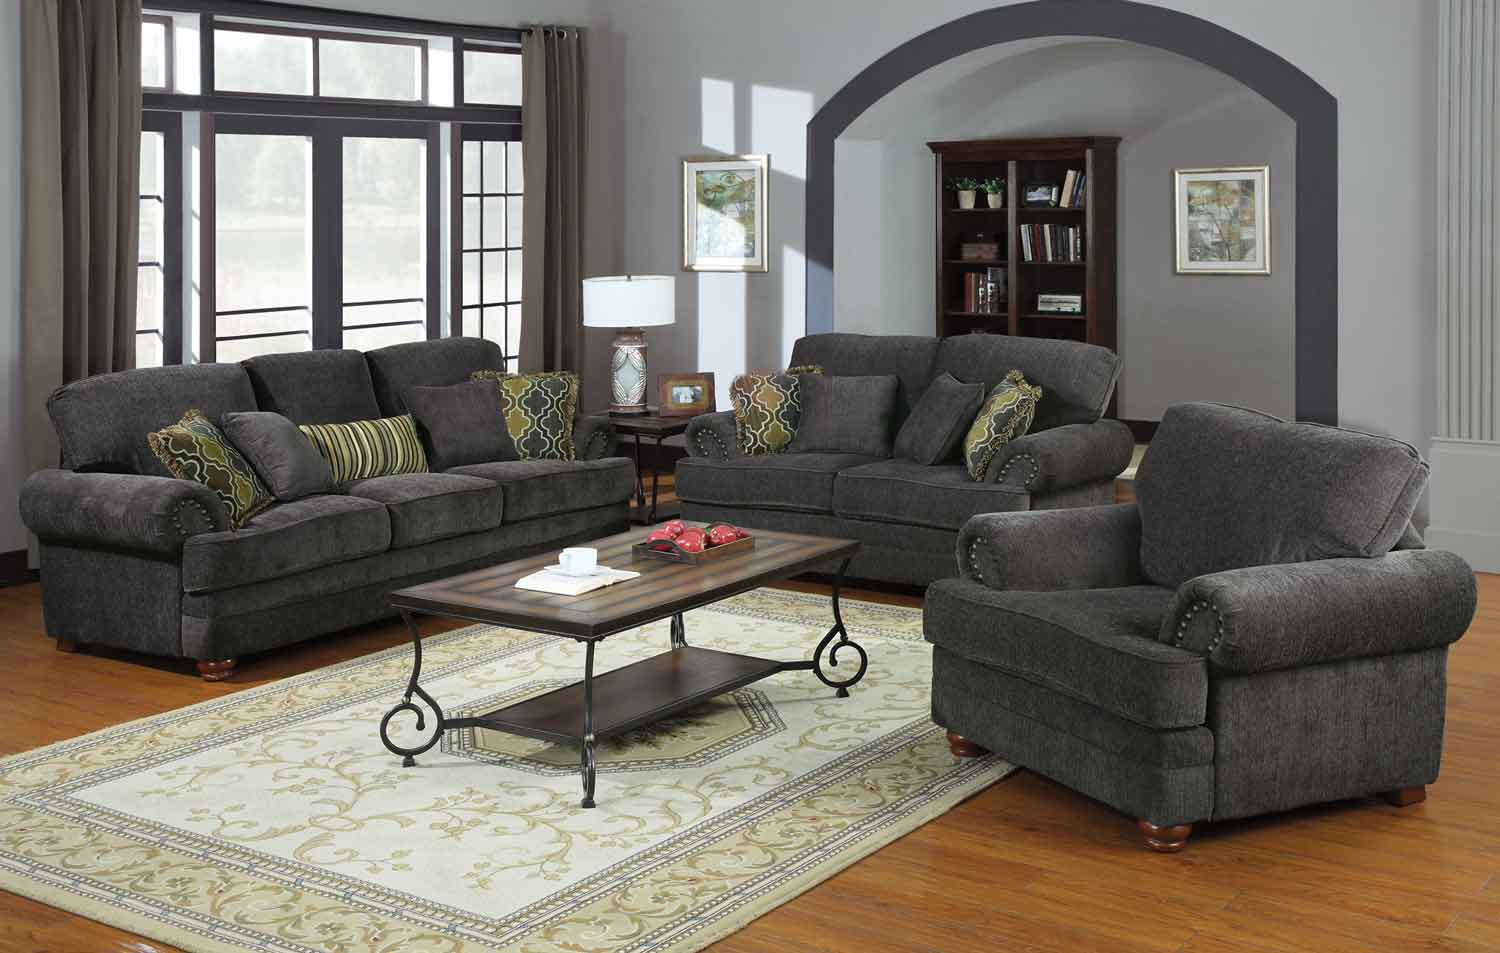 grey living room set wall colours pictures coaster colton smokey 504401 livset at homelement com